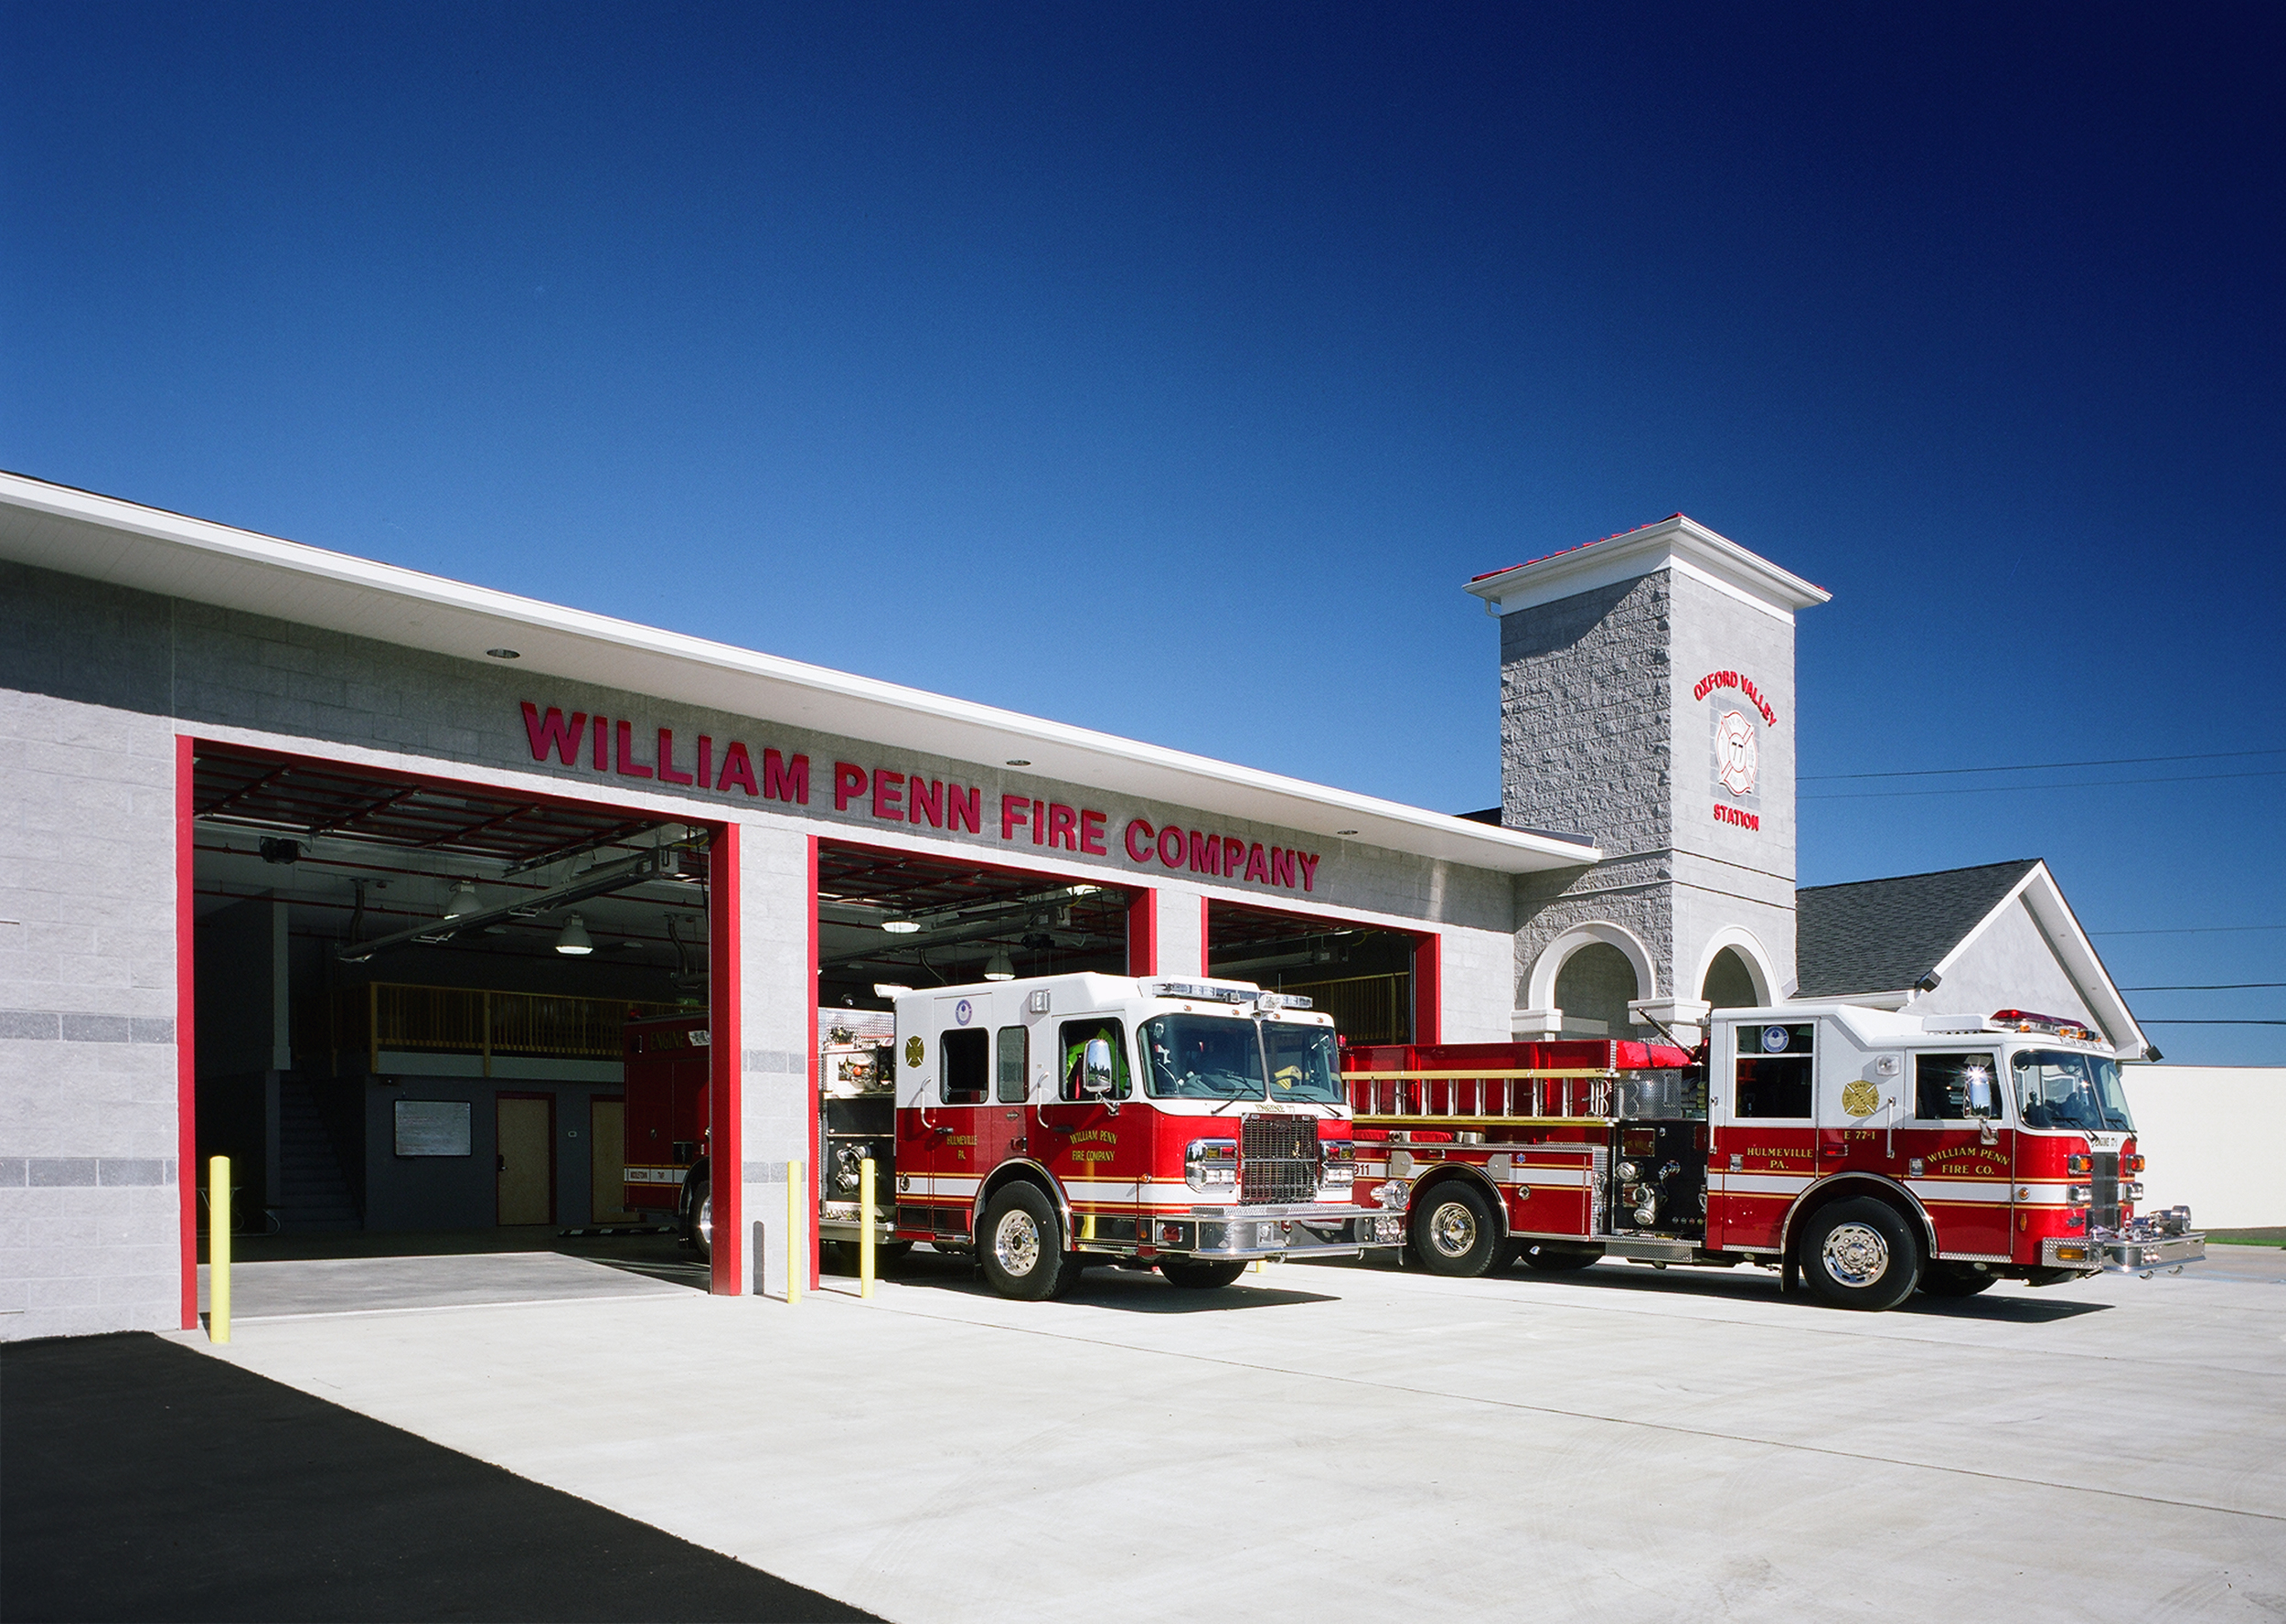 Wm. Penn Fire Co. 005.jpeg.jpg